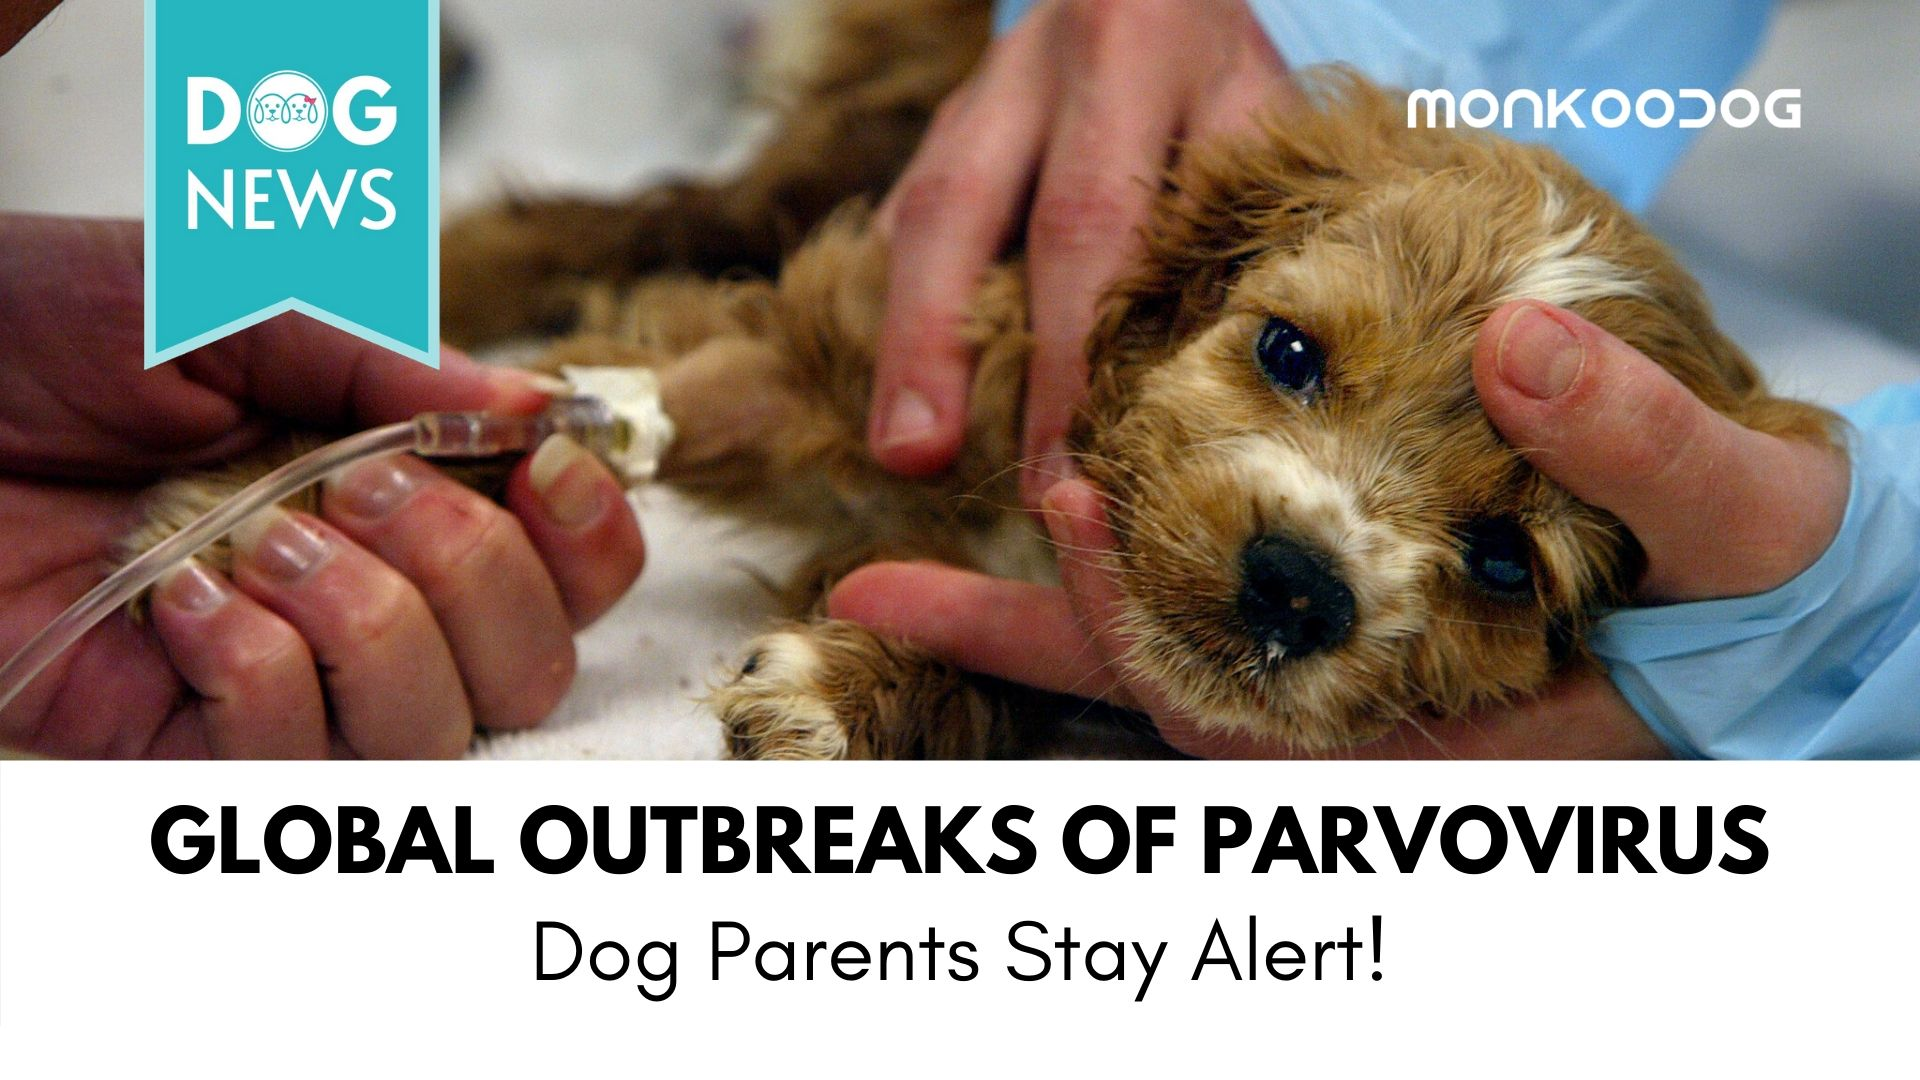 Global outbreaks of parvovirus - Dog parents stay alert